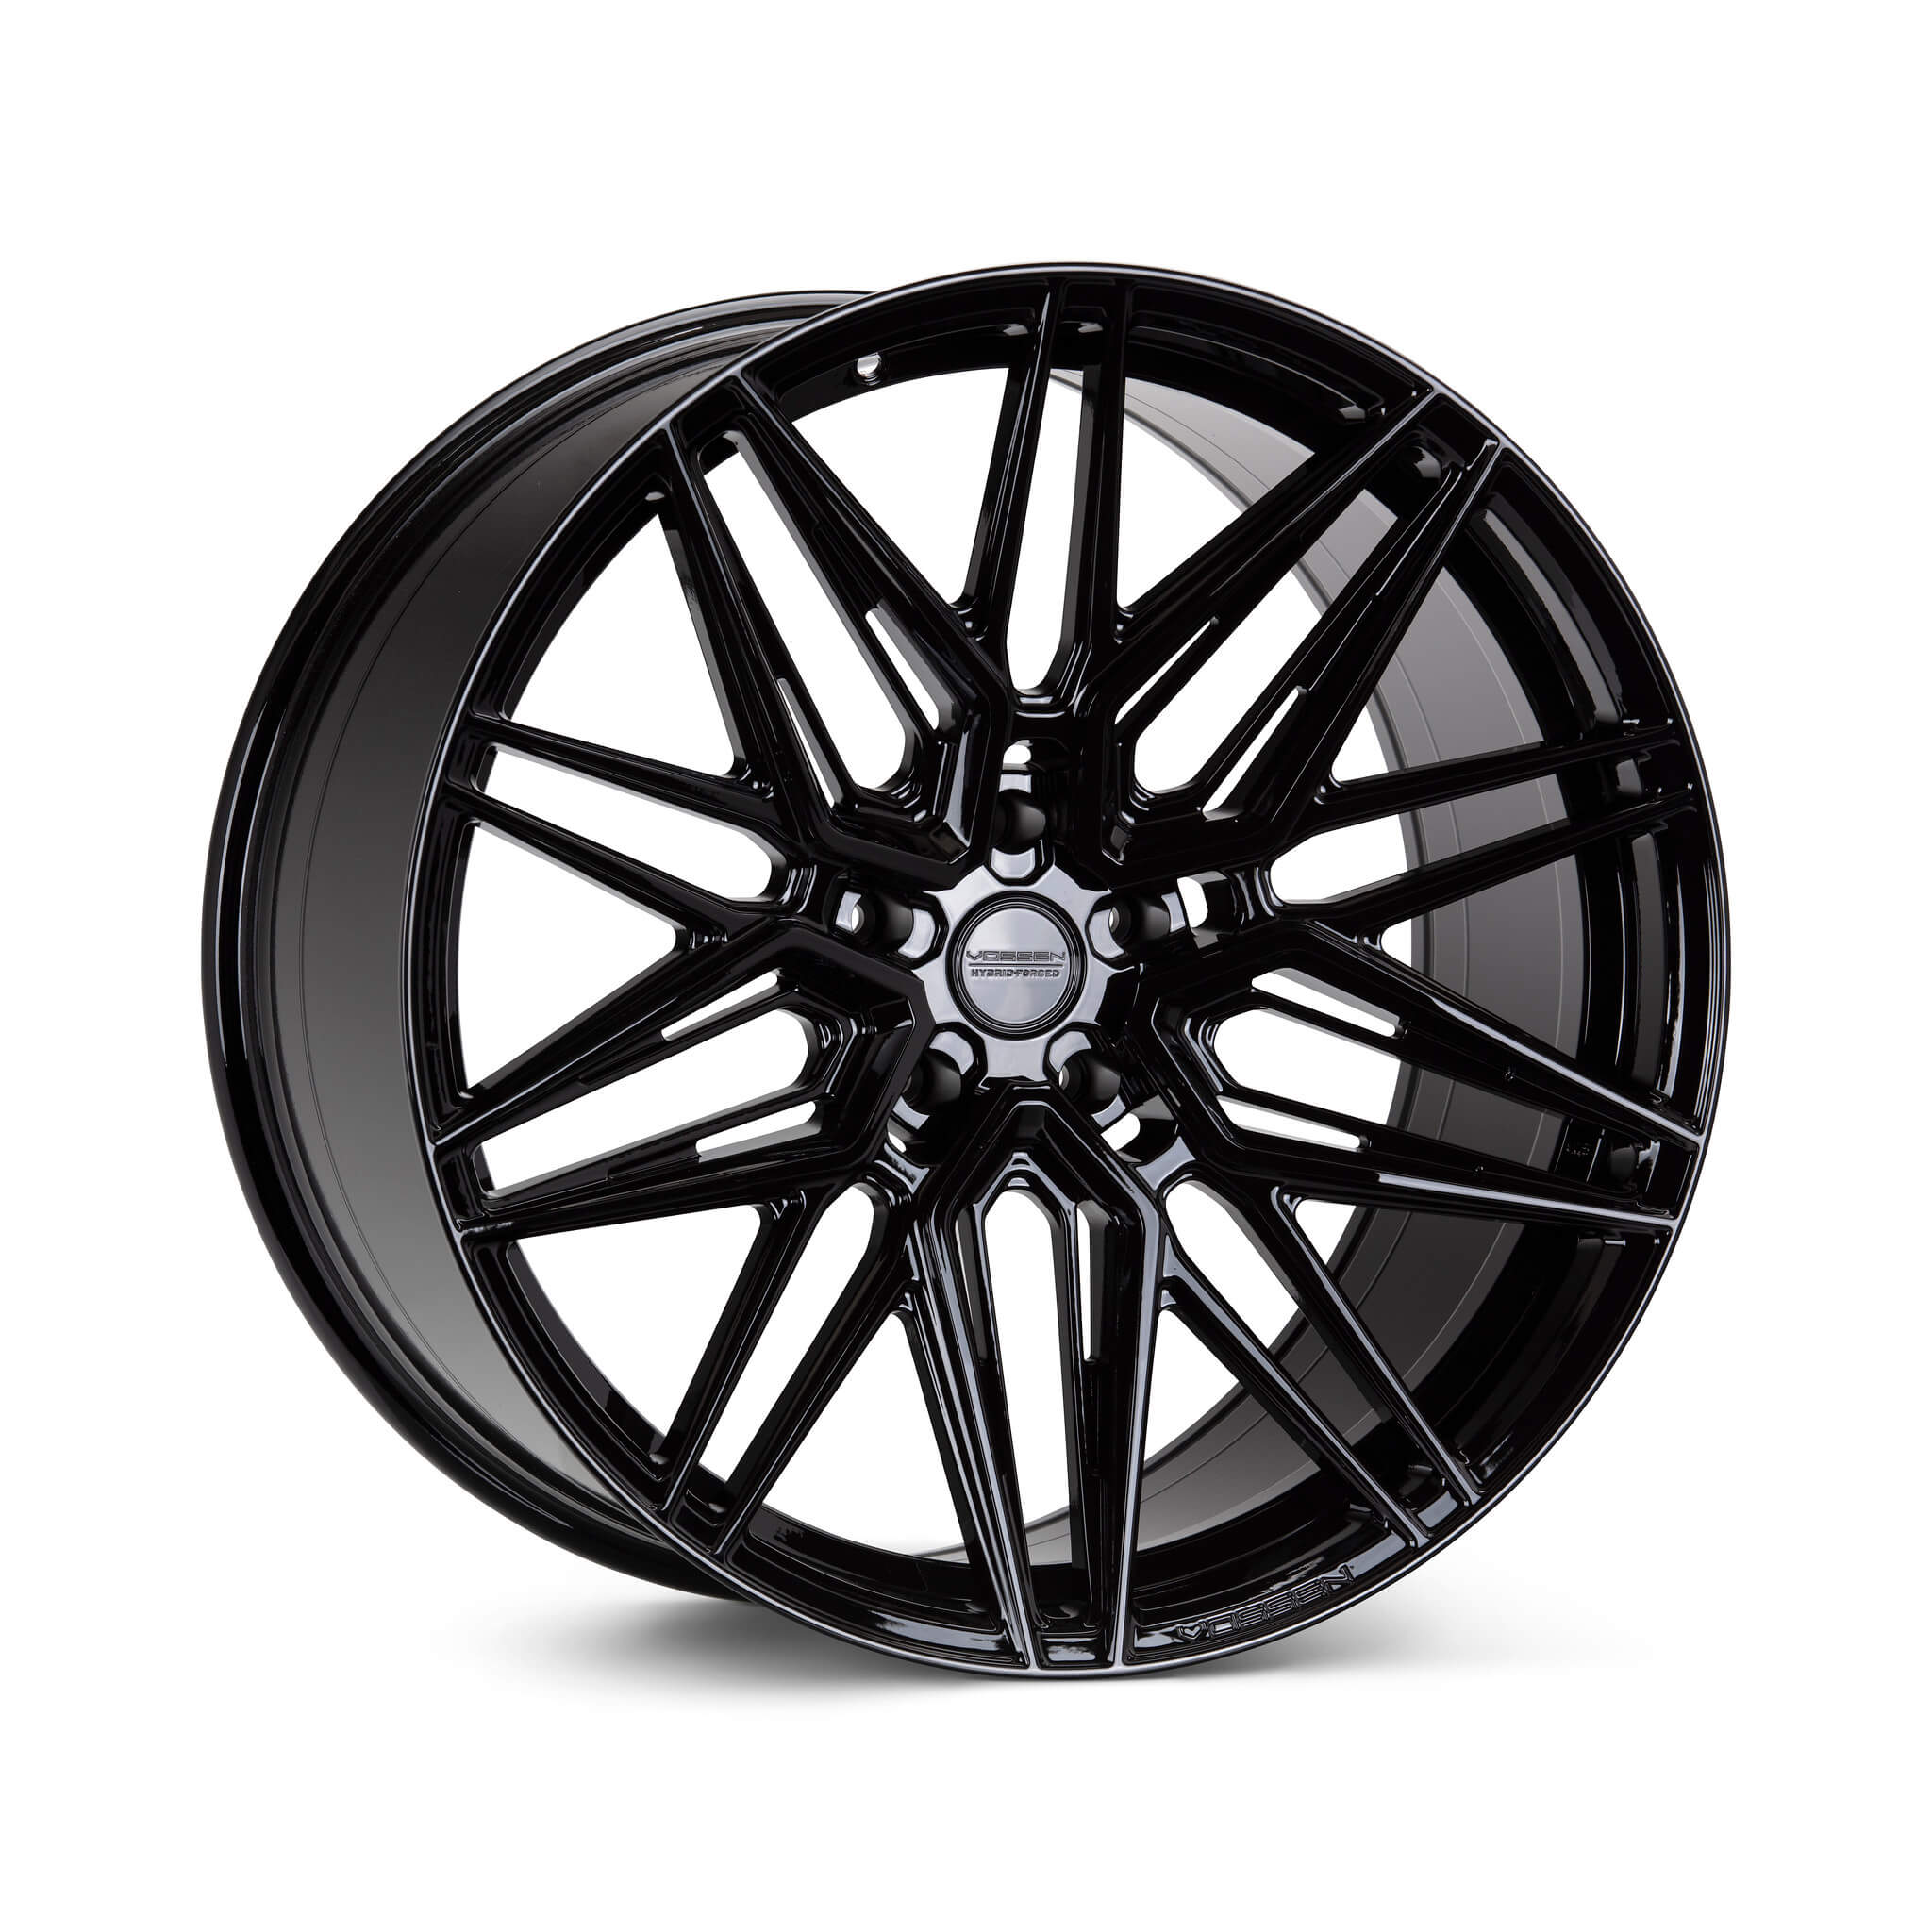 INTRODUCING THE VOSSEN HYBRID FORGED HF-7